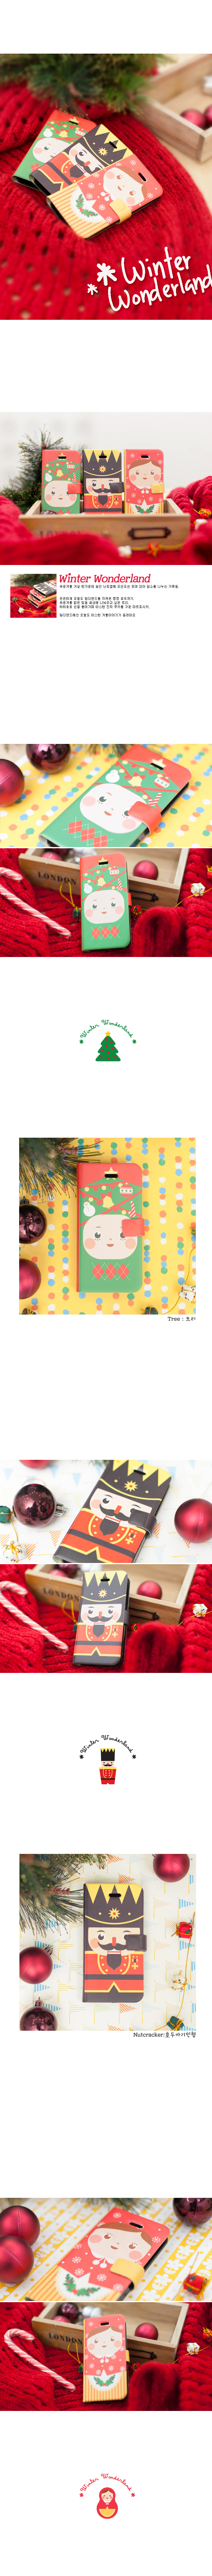 [HAPPYMORI]Flip Cover Case _ Winter Wonderland (iPhone4_4s,iPhone5_5s,iPhone6_6s)